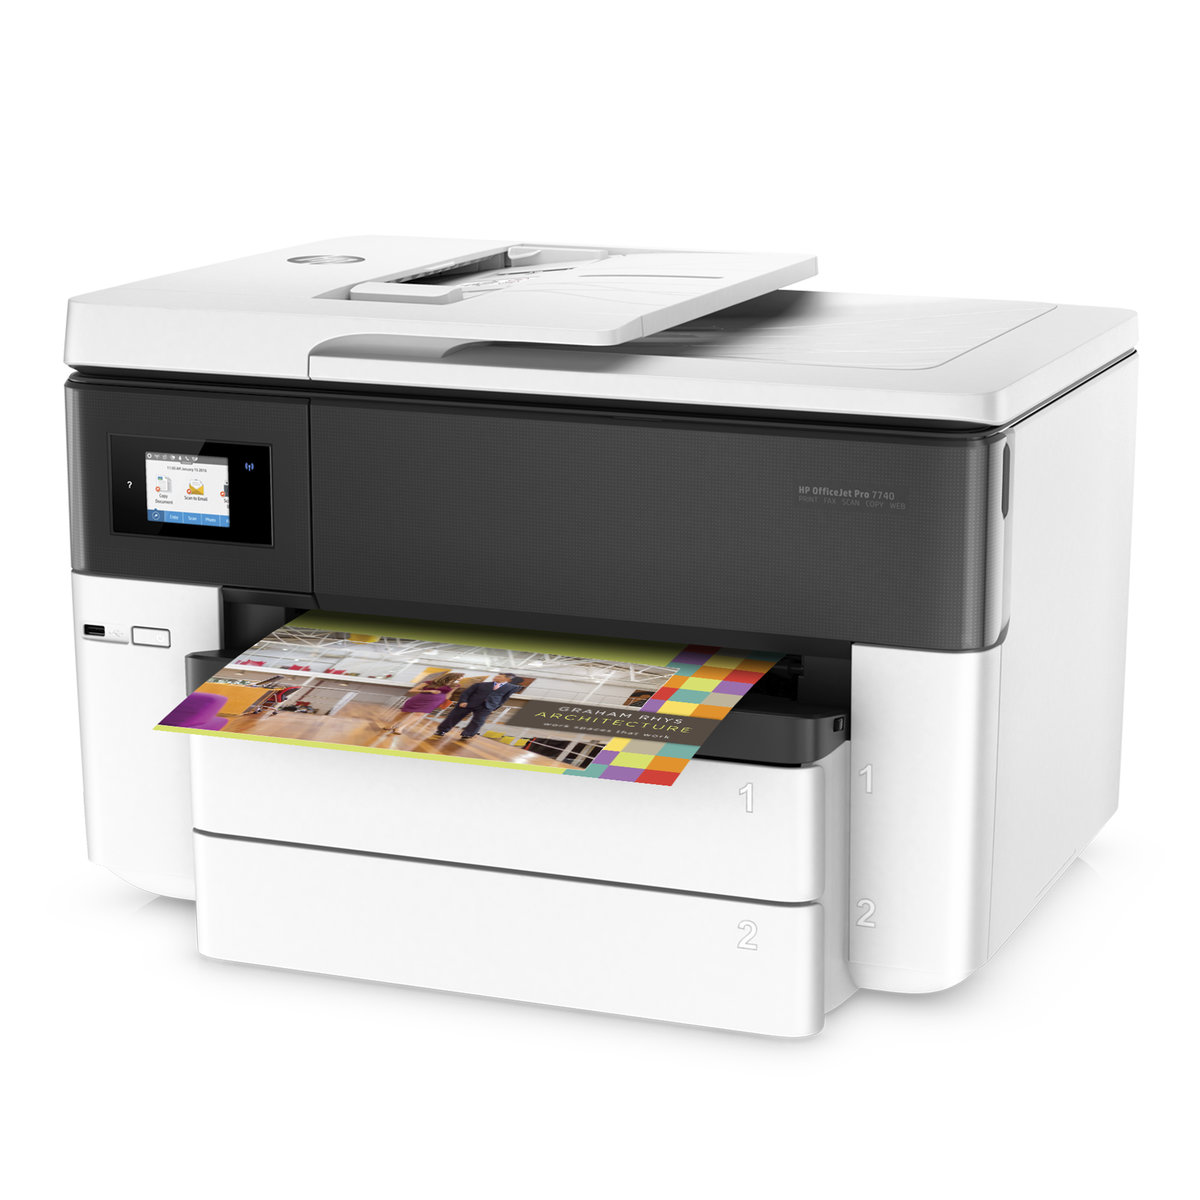 HP Officejet Pro 7740 Wide Format All-In-One Printer | Staples